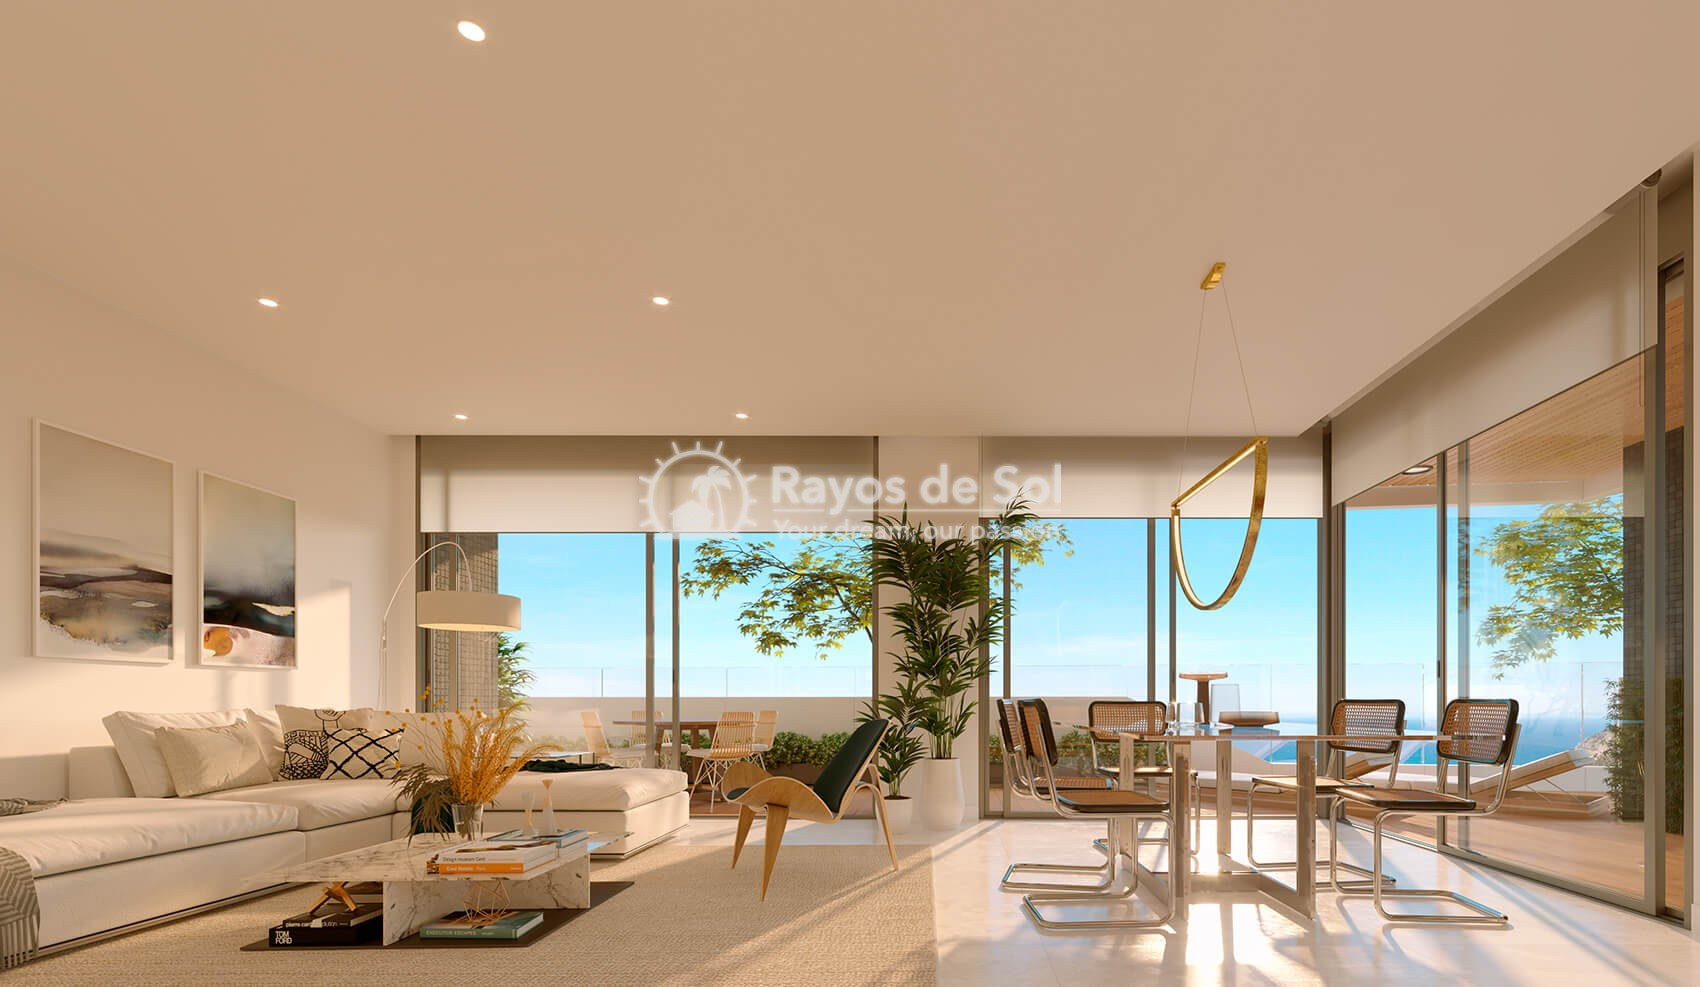 Penthouse with views  in Benidorm, Costa Blanca (Benidormb 33e) - 2